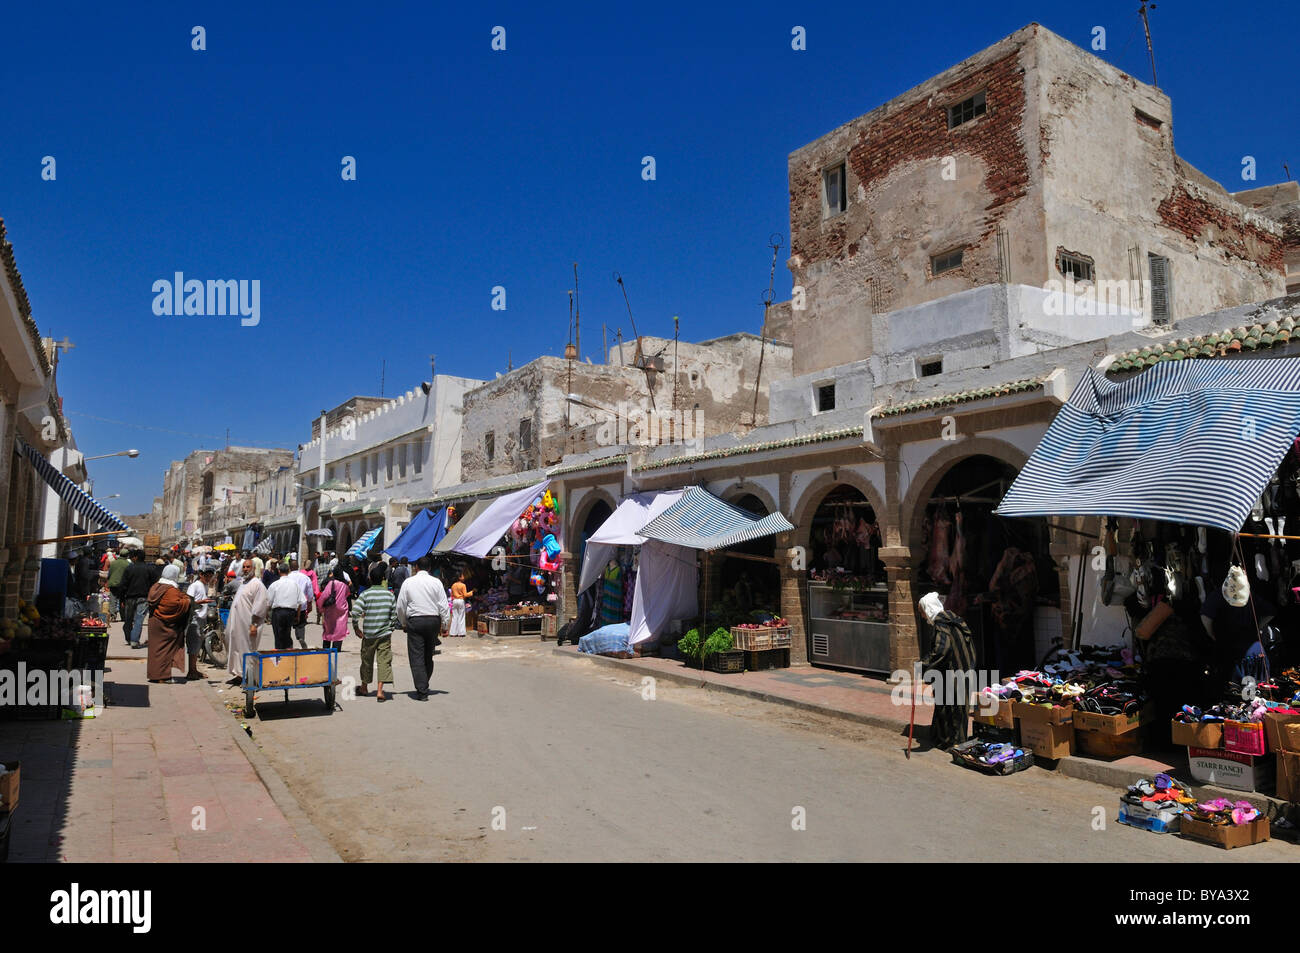 Souk of Essaouira, Unesco World Heritage Site, Morocco, North Africa - Stock Image